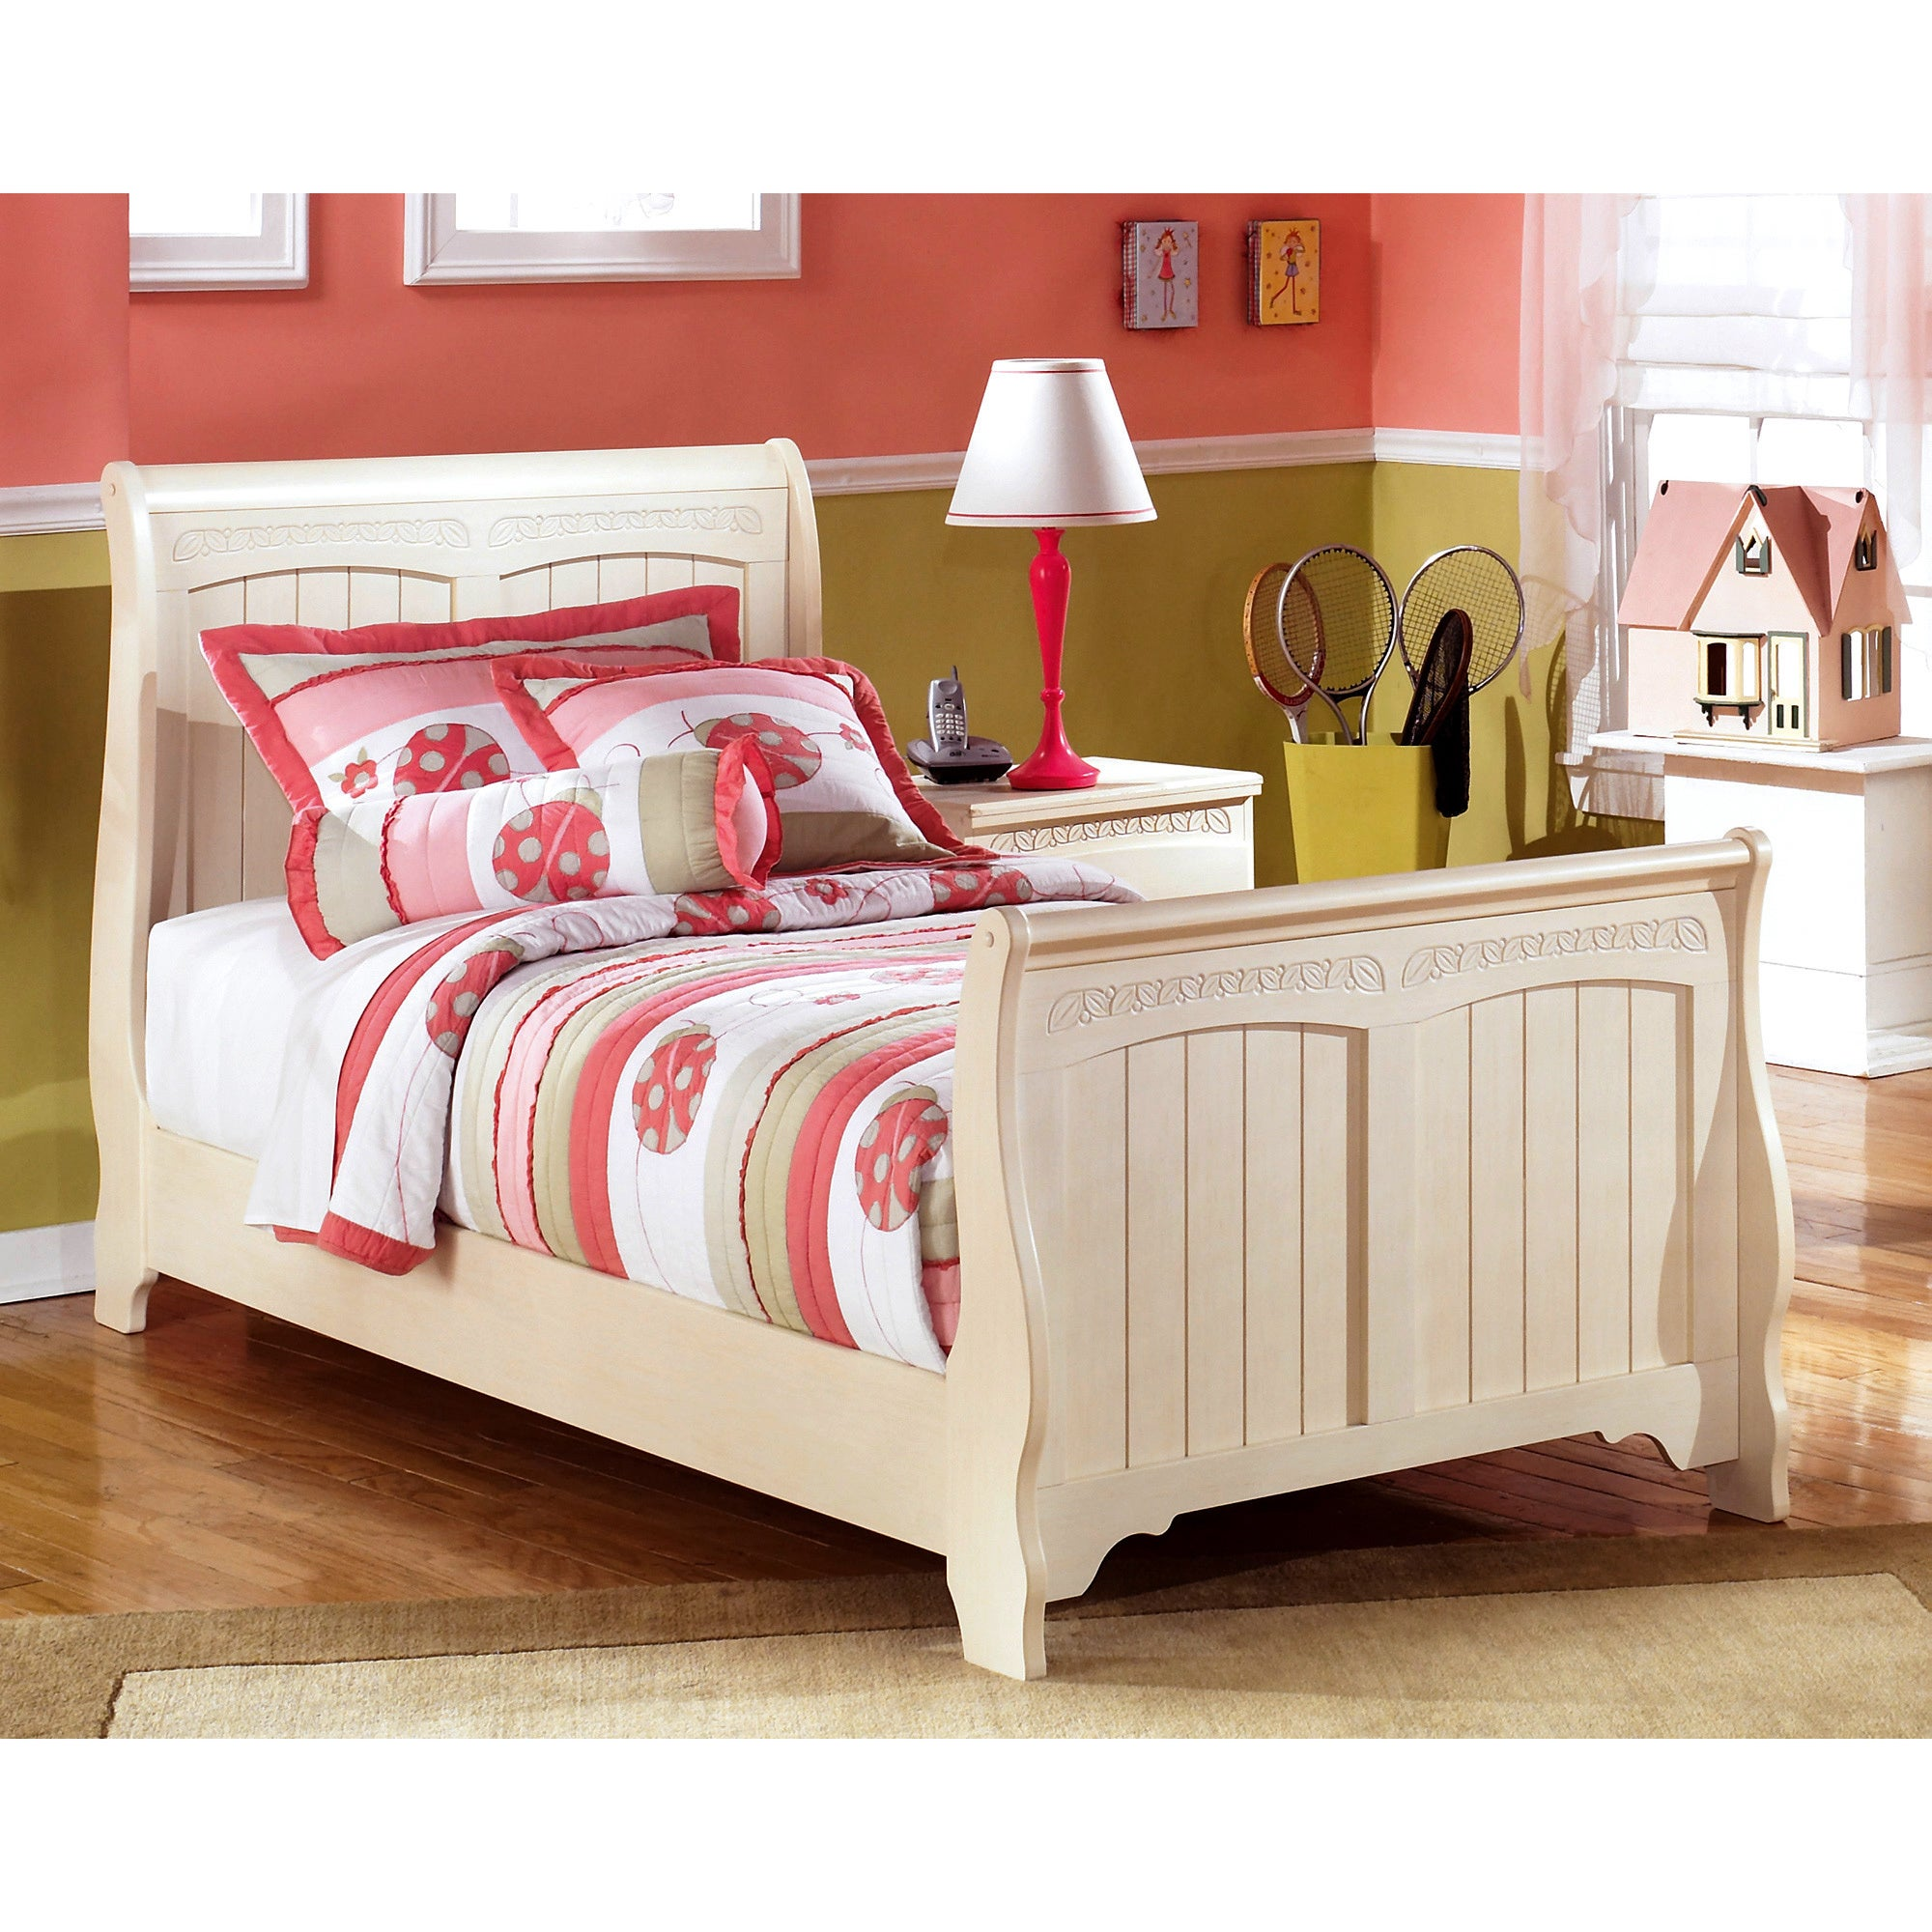 everything bedroom and is texture retreat pin bed color go a for cottage cozy